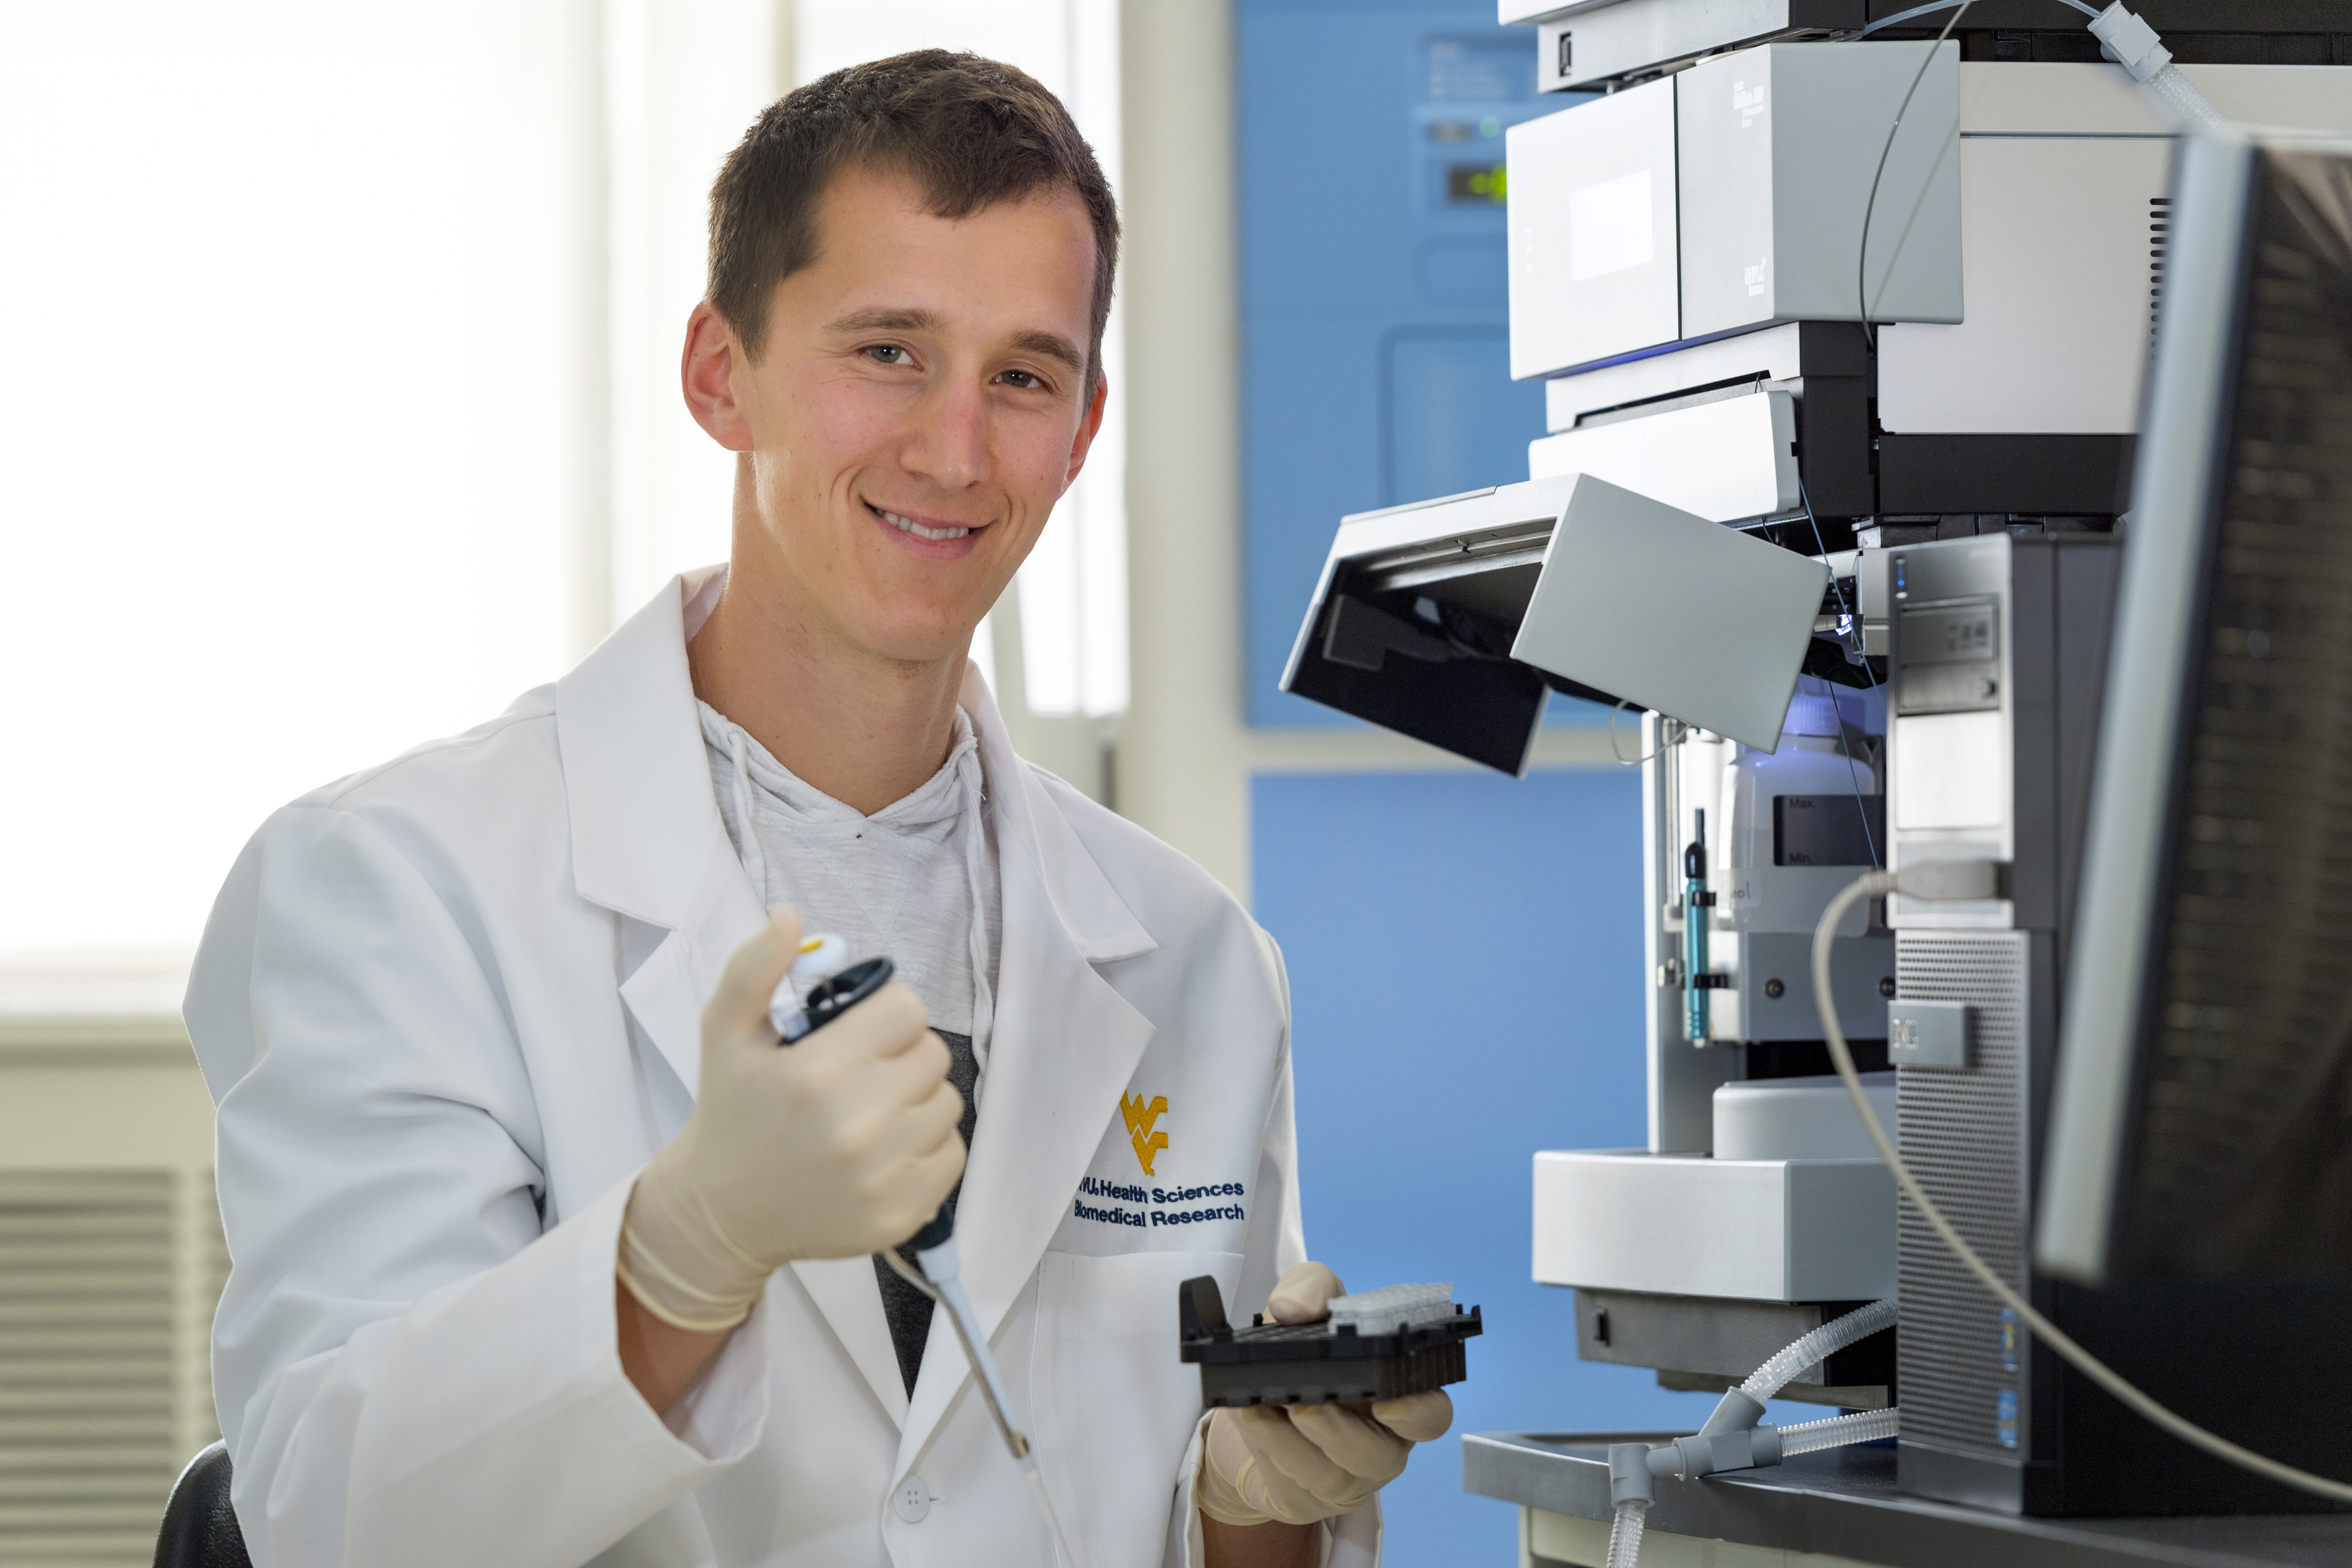 Joshua Gross, a doctoral candidate in the WVU School of Medicine, has received an NIH grant to study a protein that influences the brain's response to psychostimulant drugs.